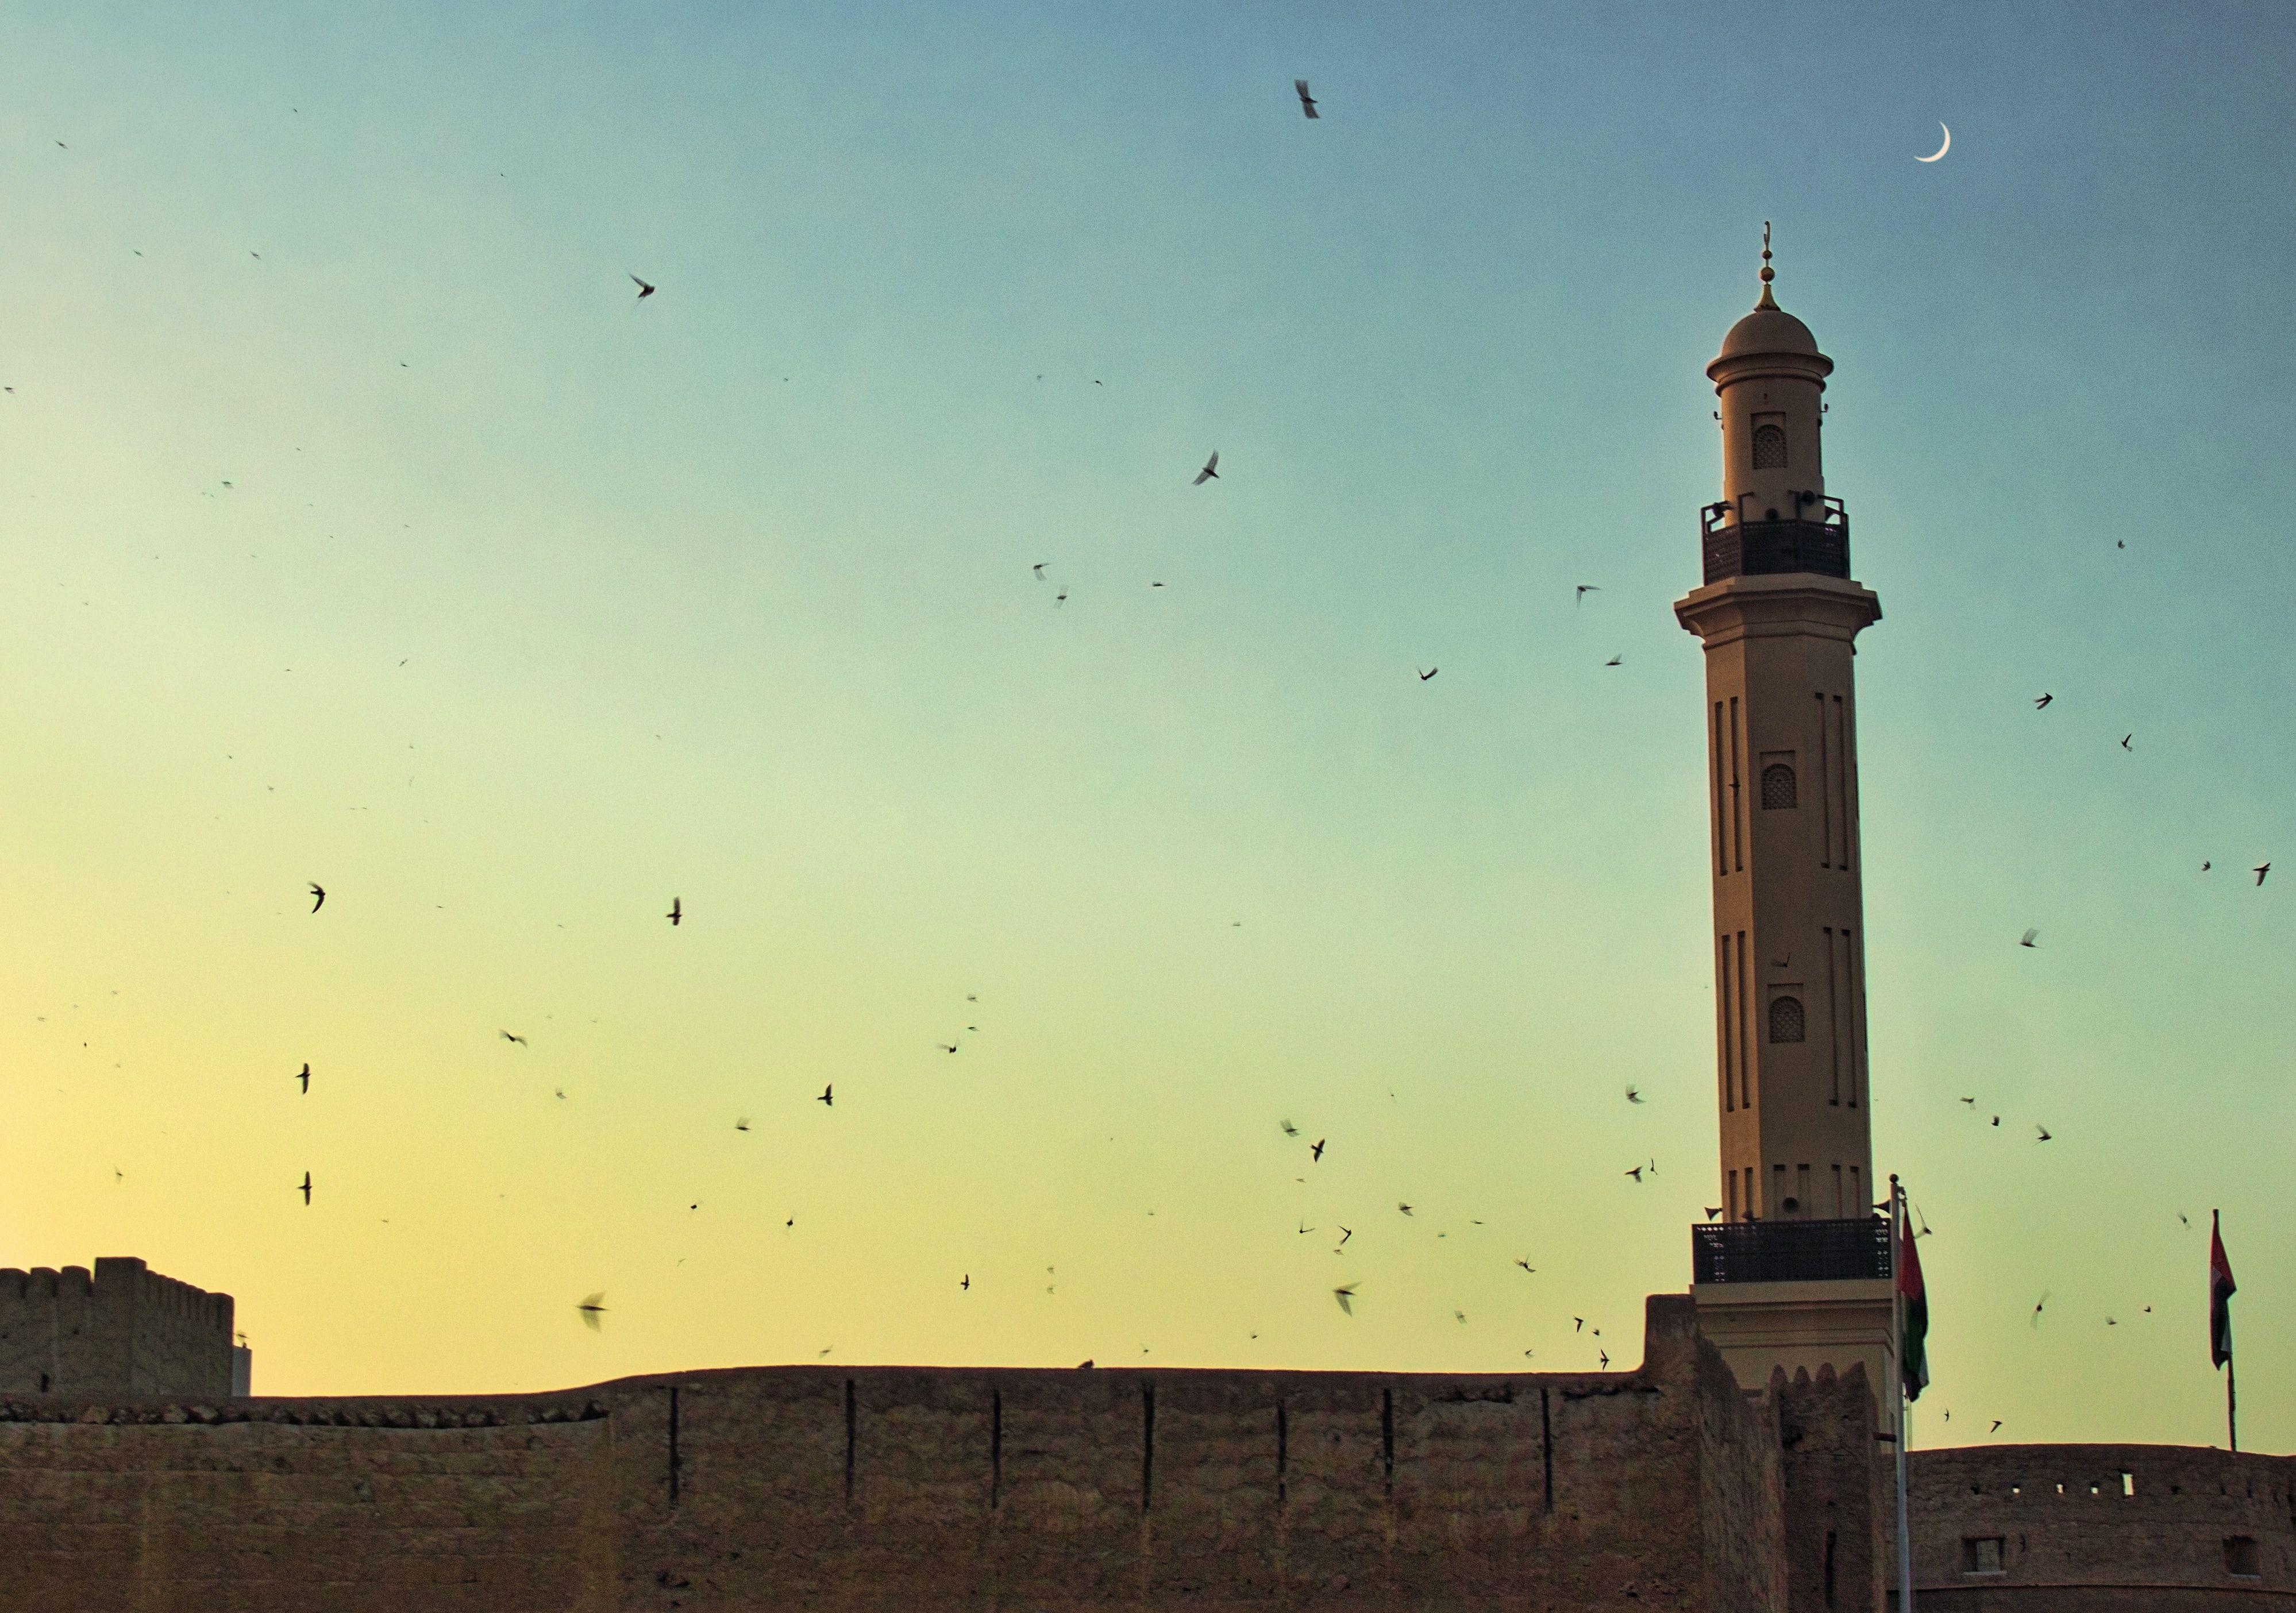 Mosque with birds flying